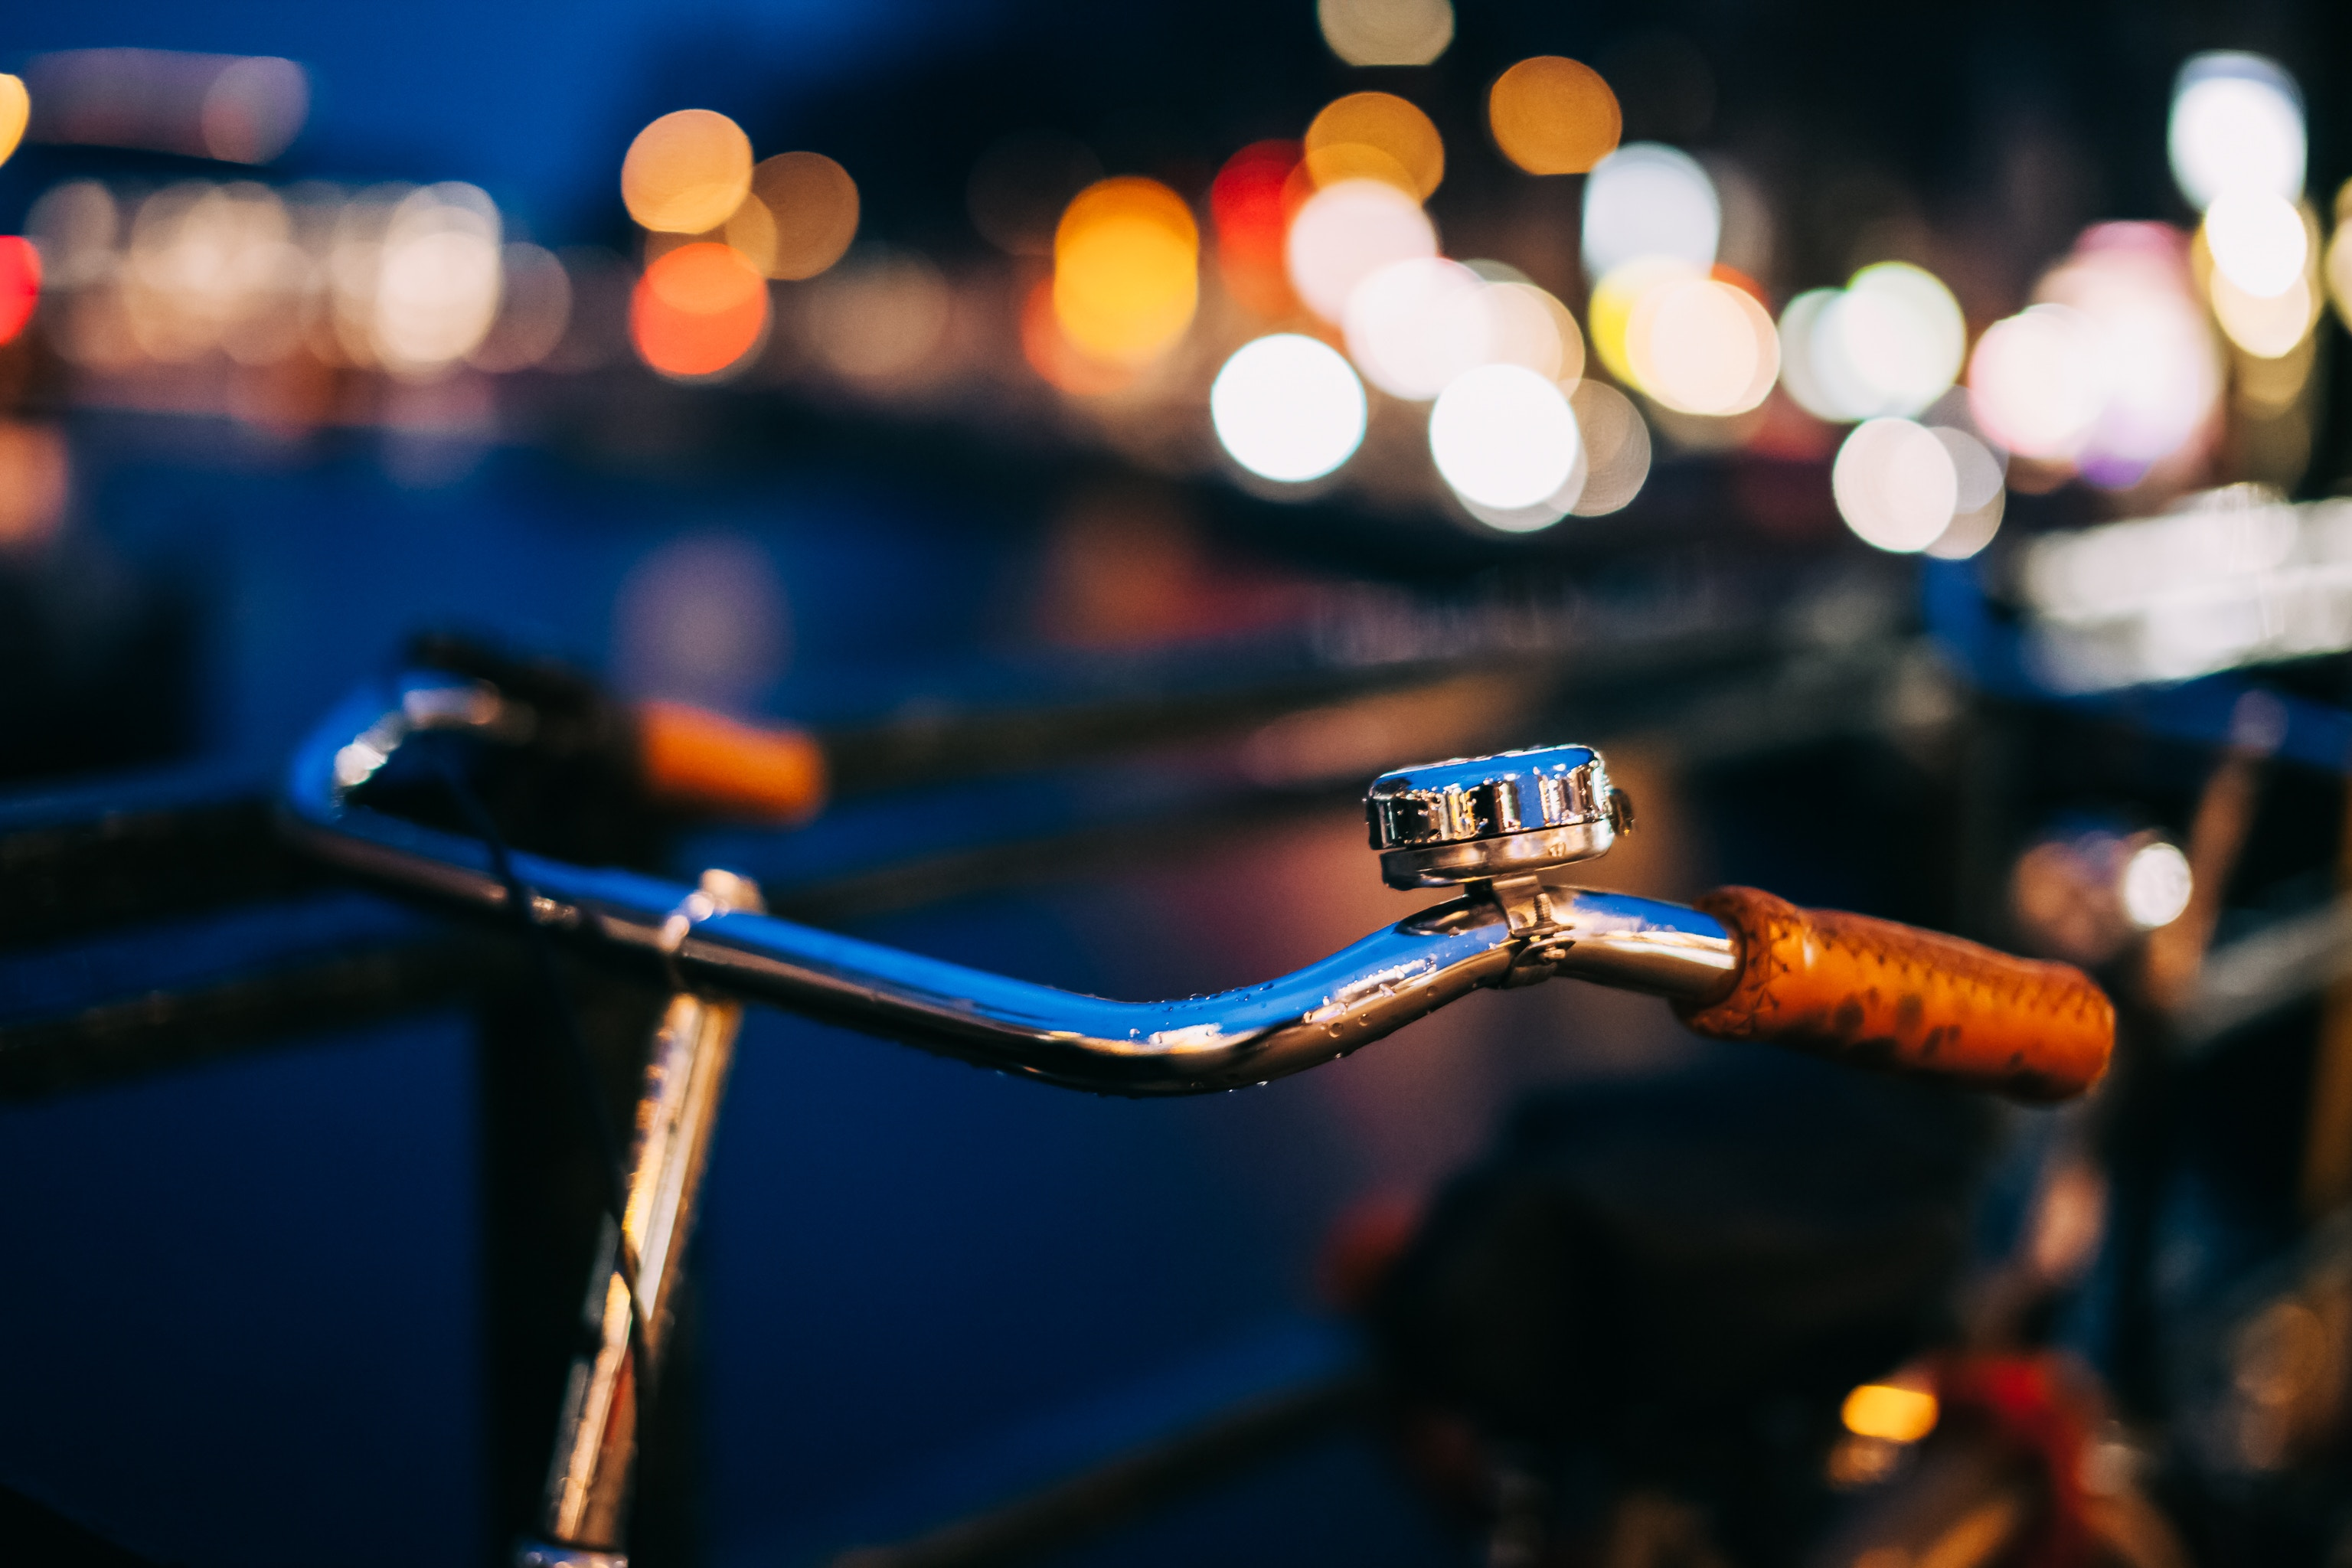 © Oleksii Khodakivskiy, Vintage bicycle handlebars with a retro bike bell parked on the city, BY-SA CC 0.0